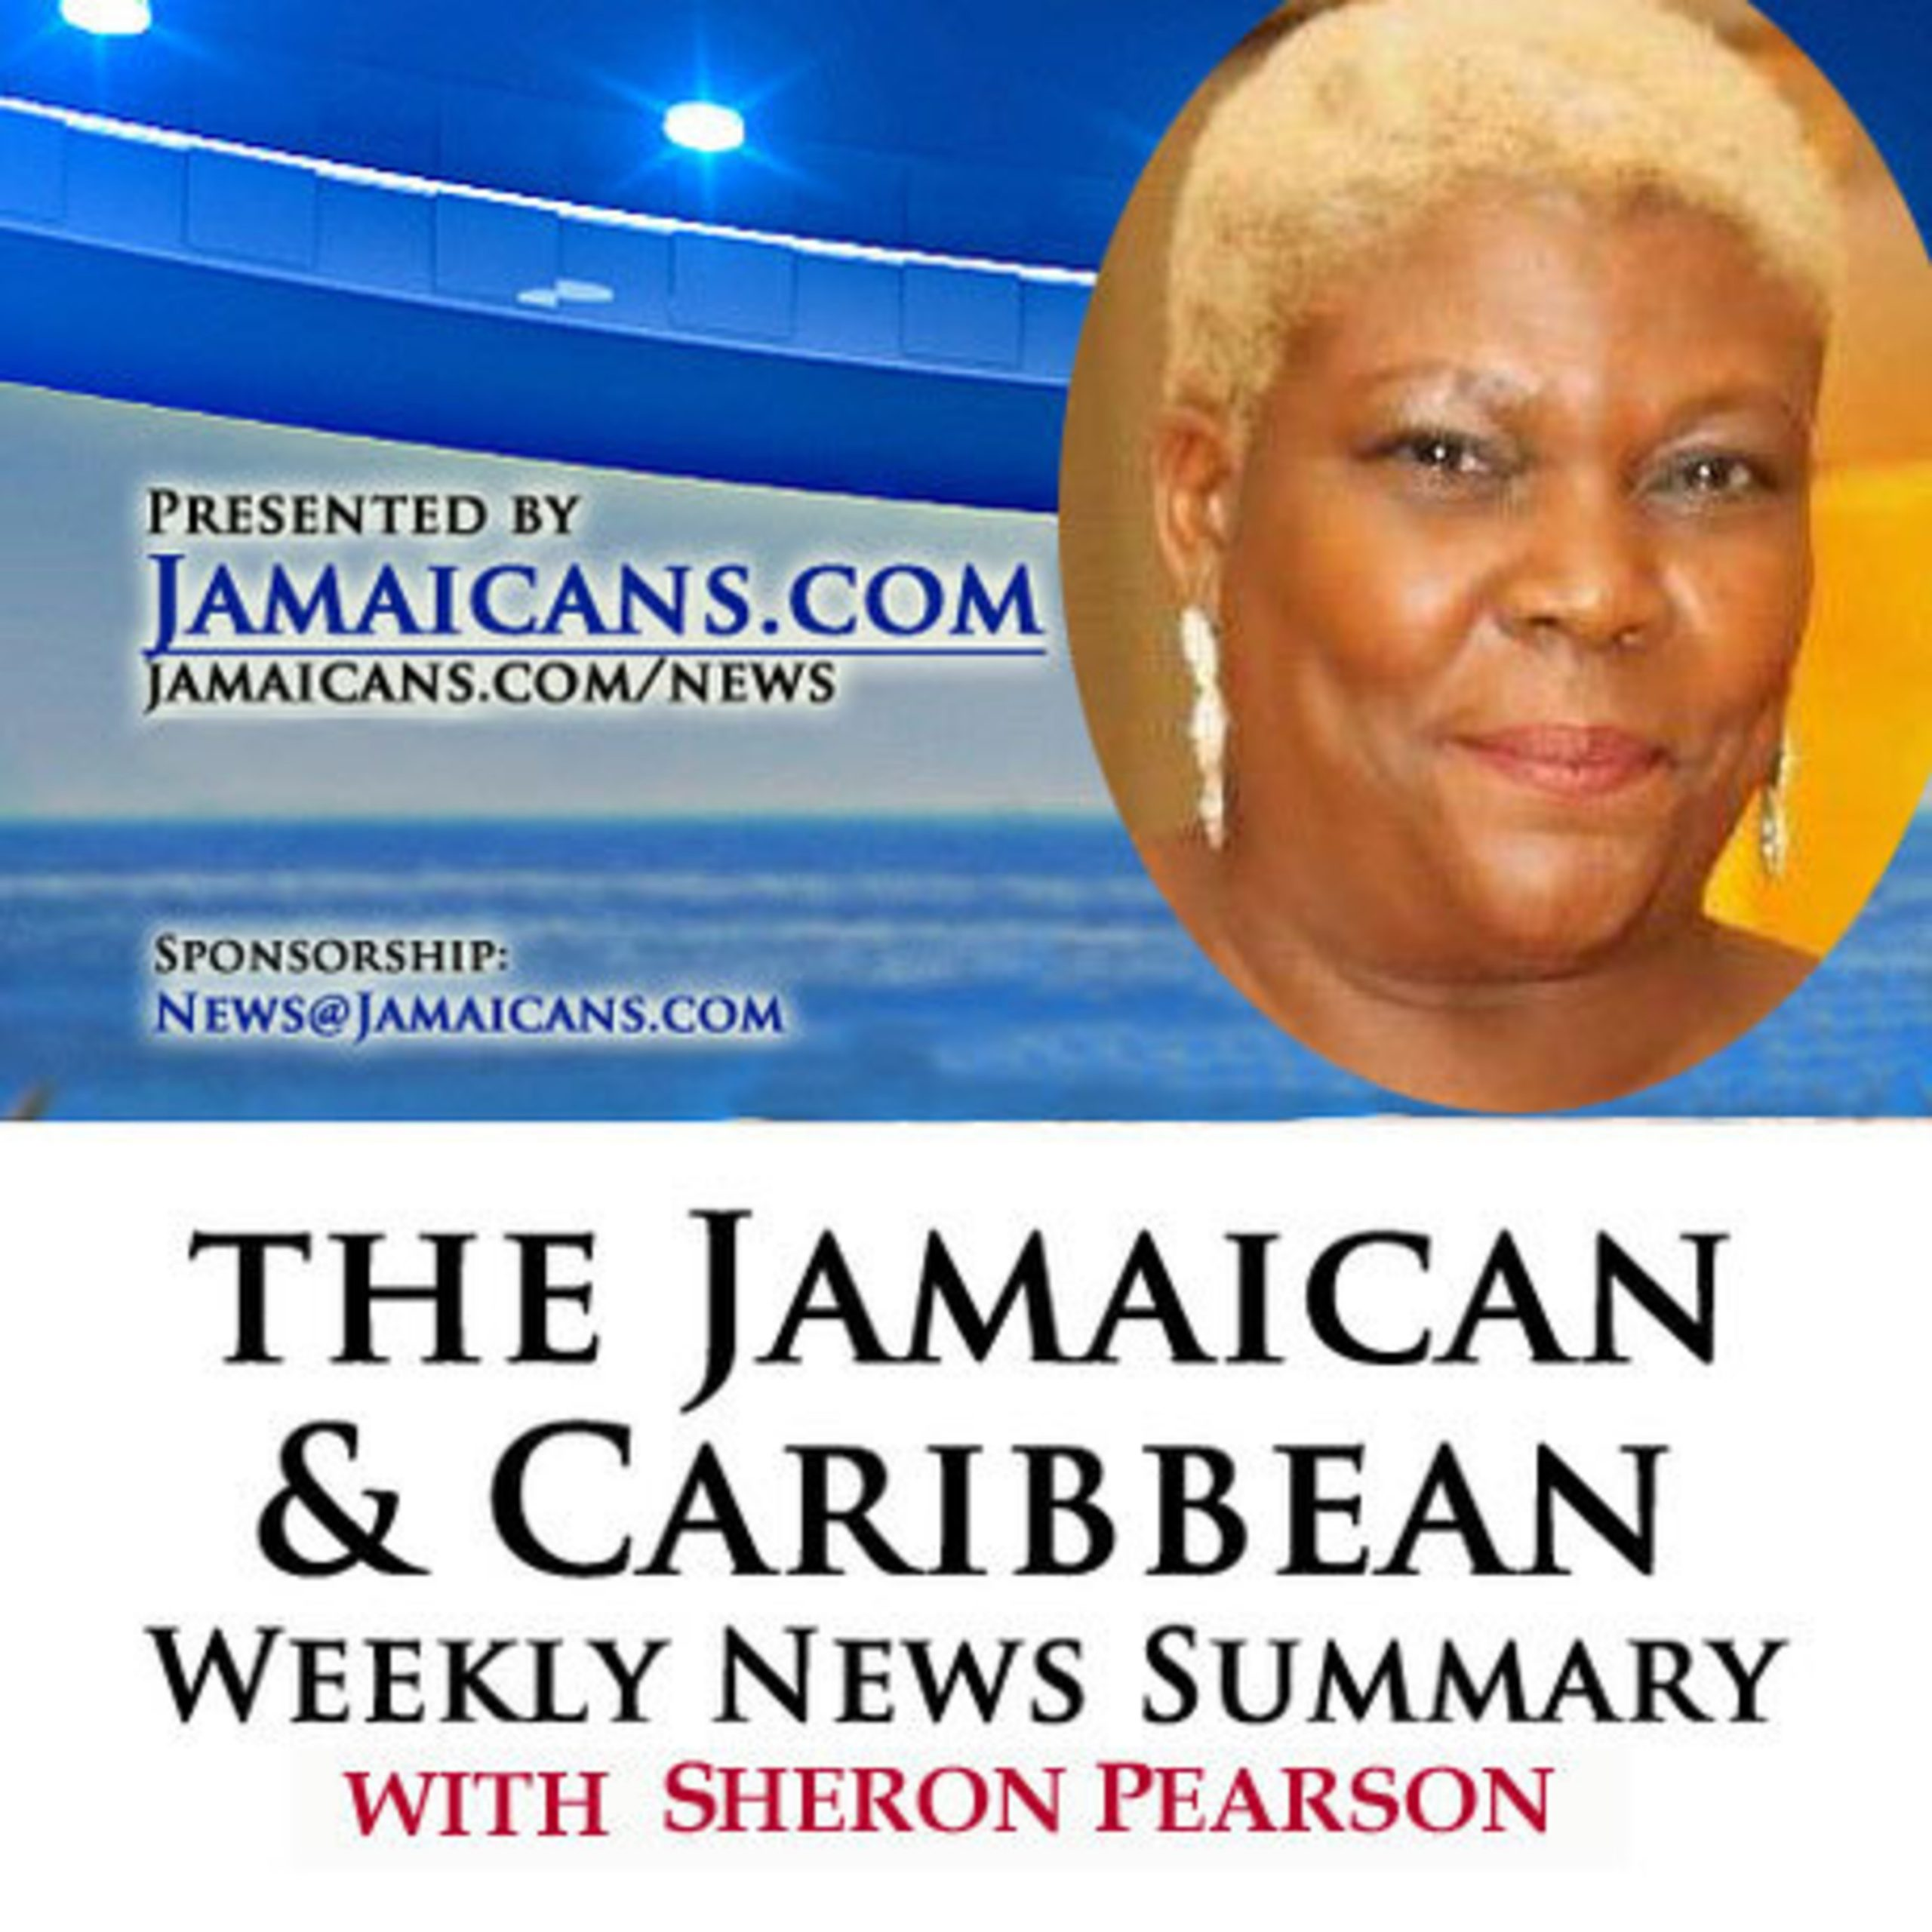 Listen to the Podcast of The Jamaica & Caribbean Weekly News Summary for the week ending November 8, 2019